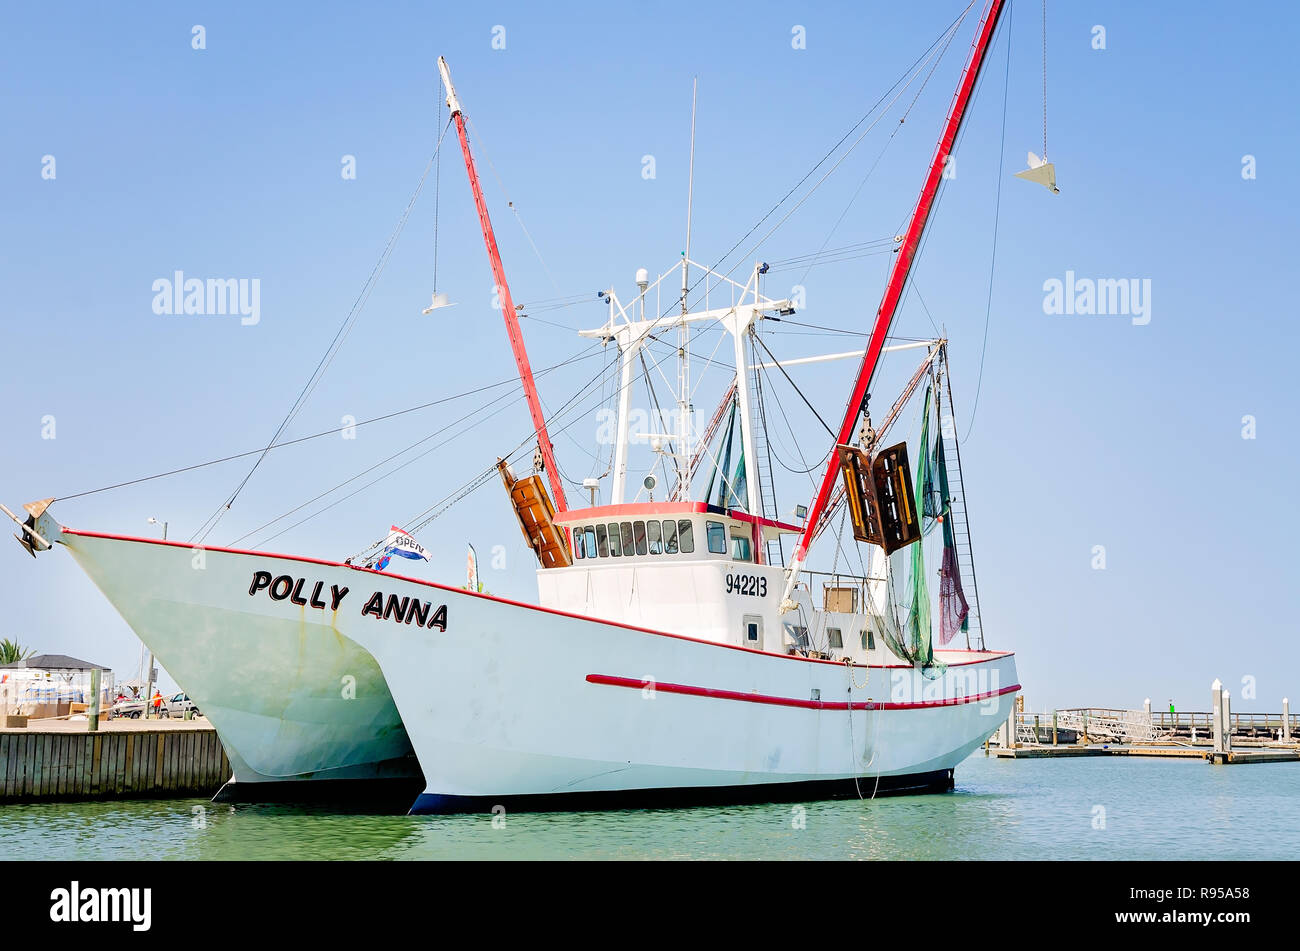 Tri Hull Shrimp Boat Stock Photos & Tri Hull Shrimp Boat Stock